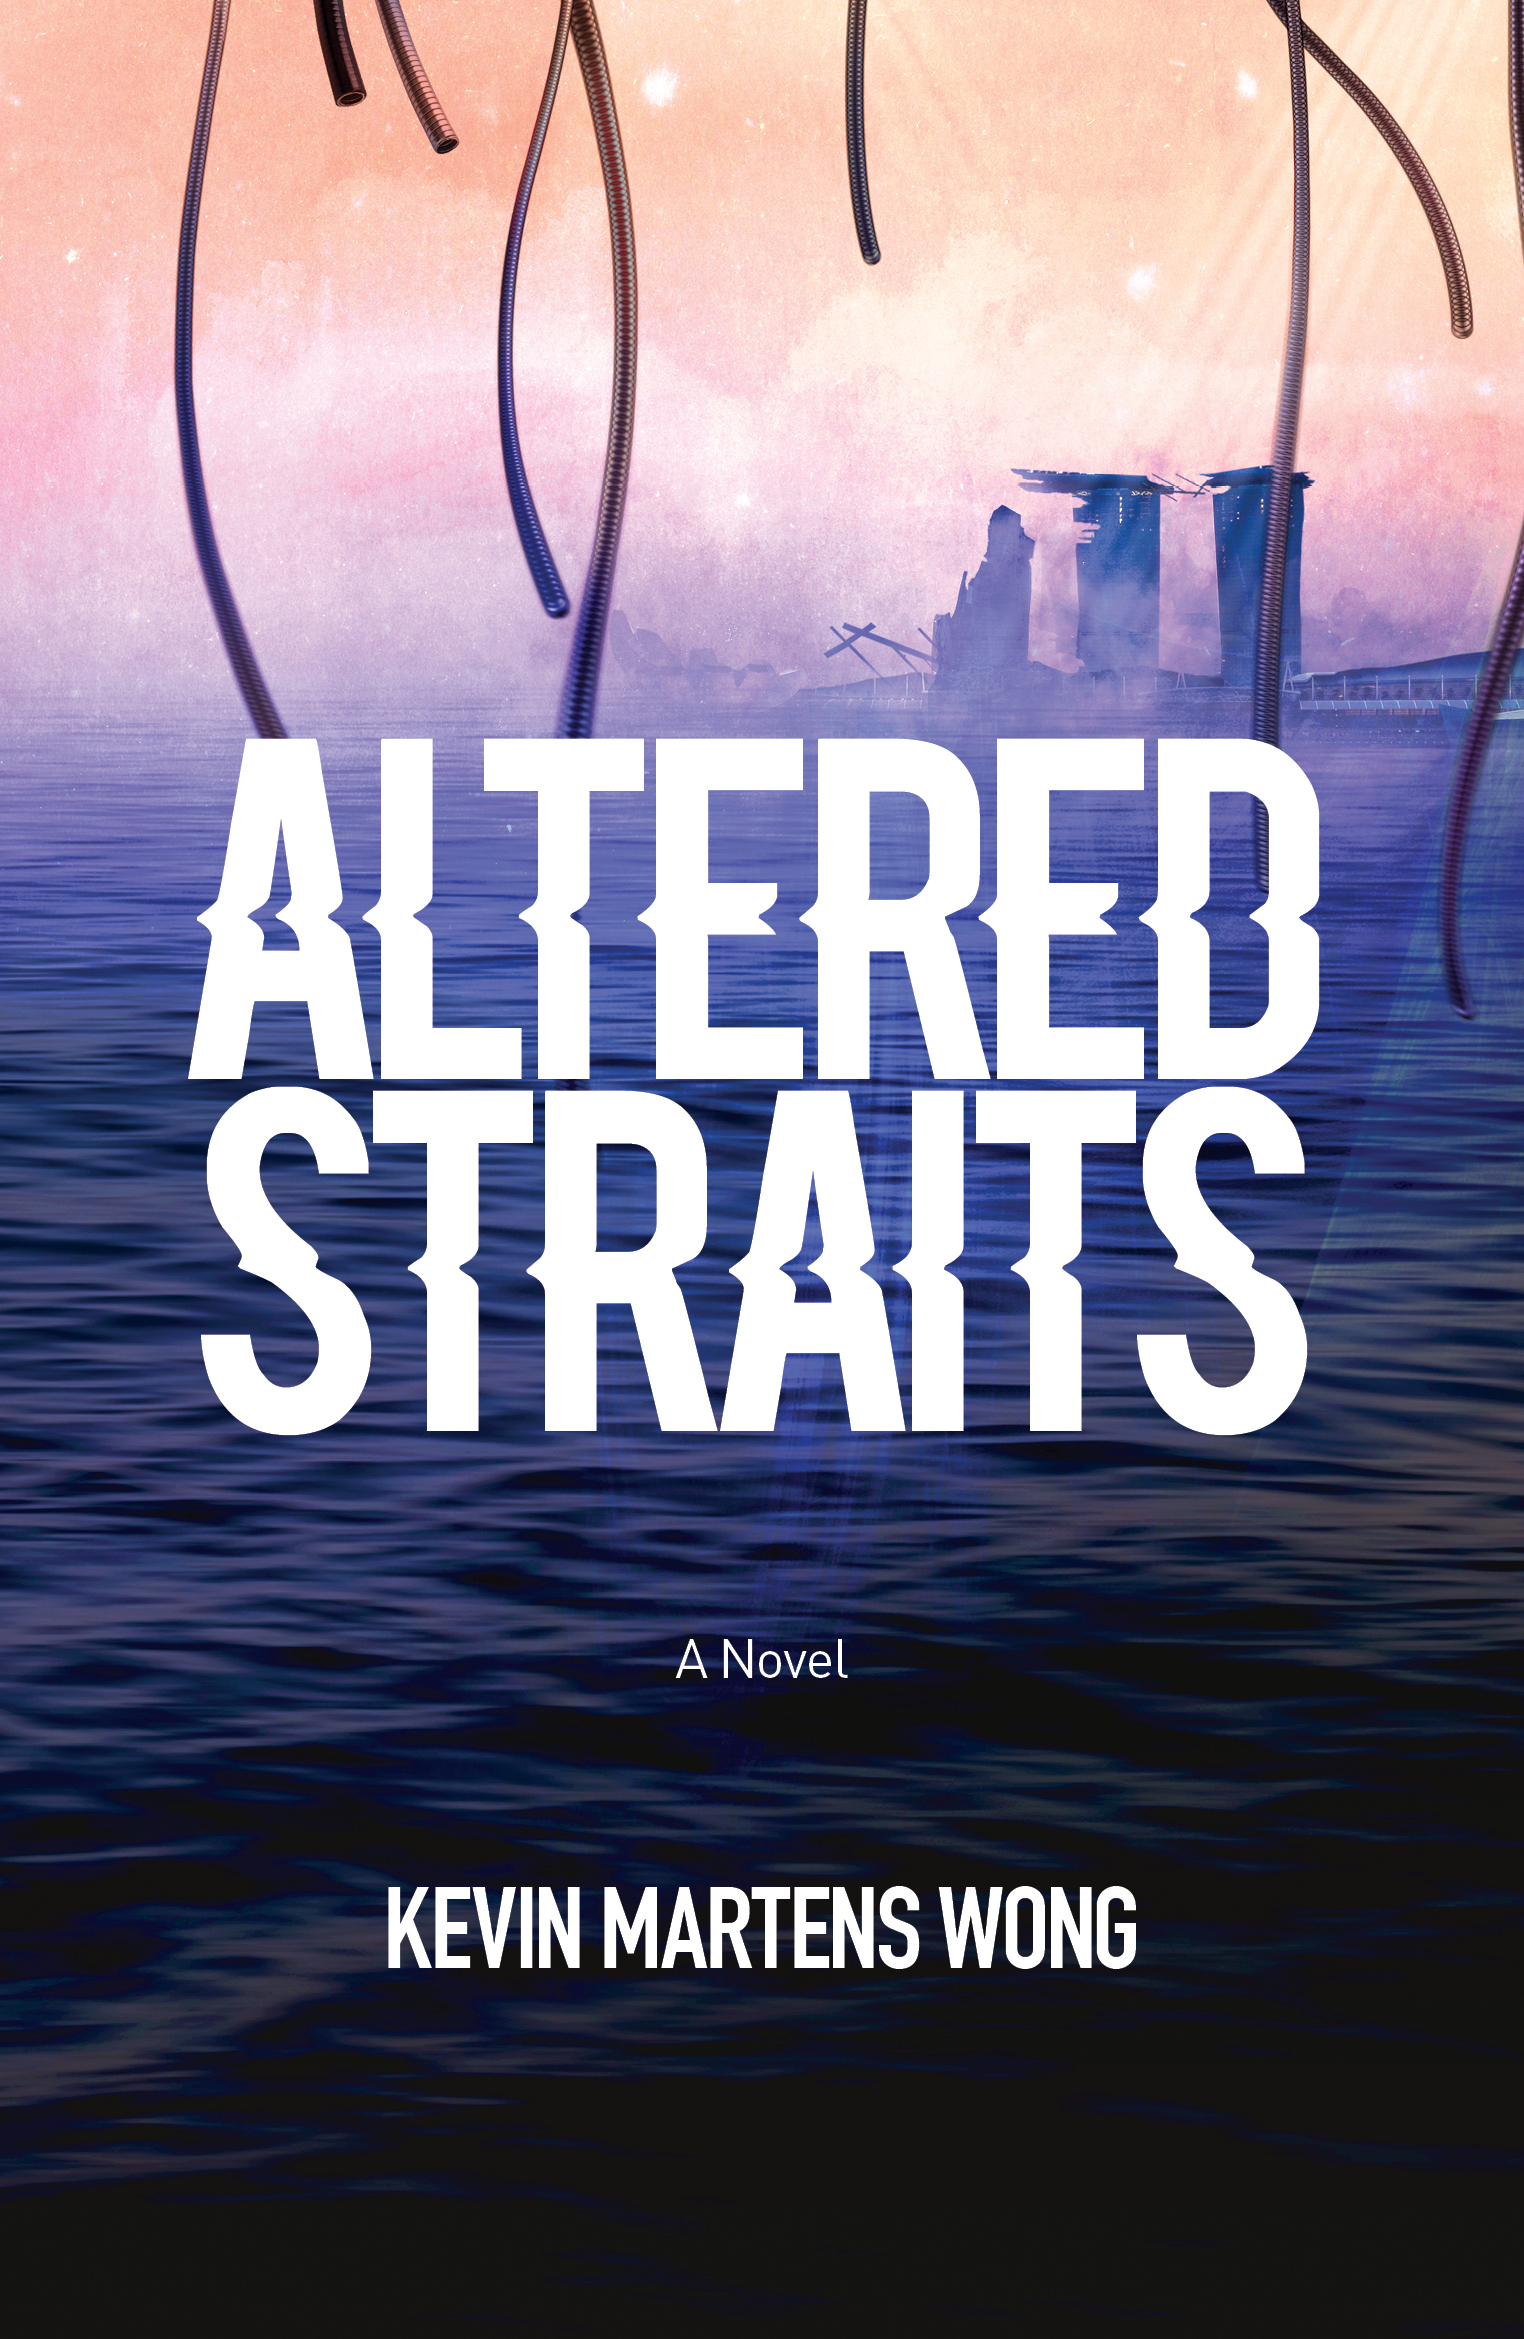 - ALTERED STRAITSKevin Martens WongIn an alternate 1947 filled with mystical creatures, Singapuran boy-soldier Naufal Jazair is bonded to the merlion Bahana and enlisted in a war against an aggressive neighbour. Meanwhile, in a dystopian Singapore in 2047, SAF officer Titus Ang is tasked with entering Naufal's universe and retrieving a merlion to save the future of Singapore from the Concordance, a hive intelligence that is close to consuming what remains of humanity.£10Speculative fiction978-1-91-209860-6November 2018ORDER THE BOOK HERE